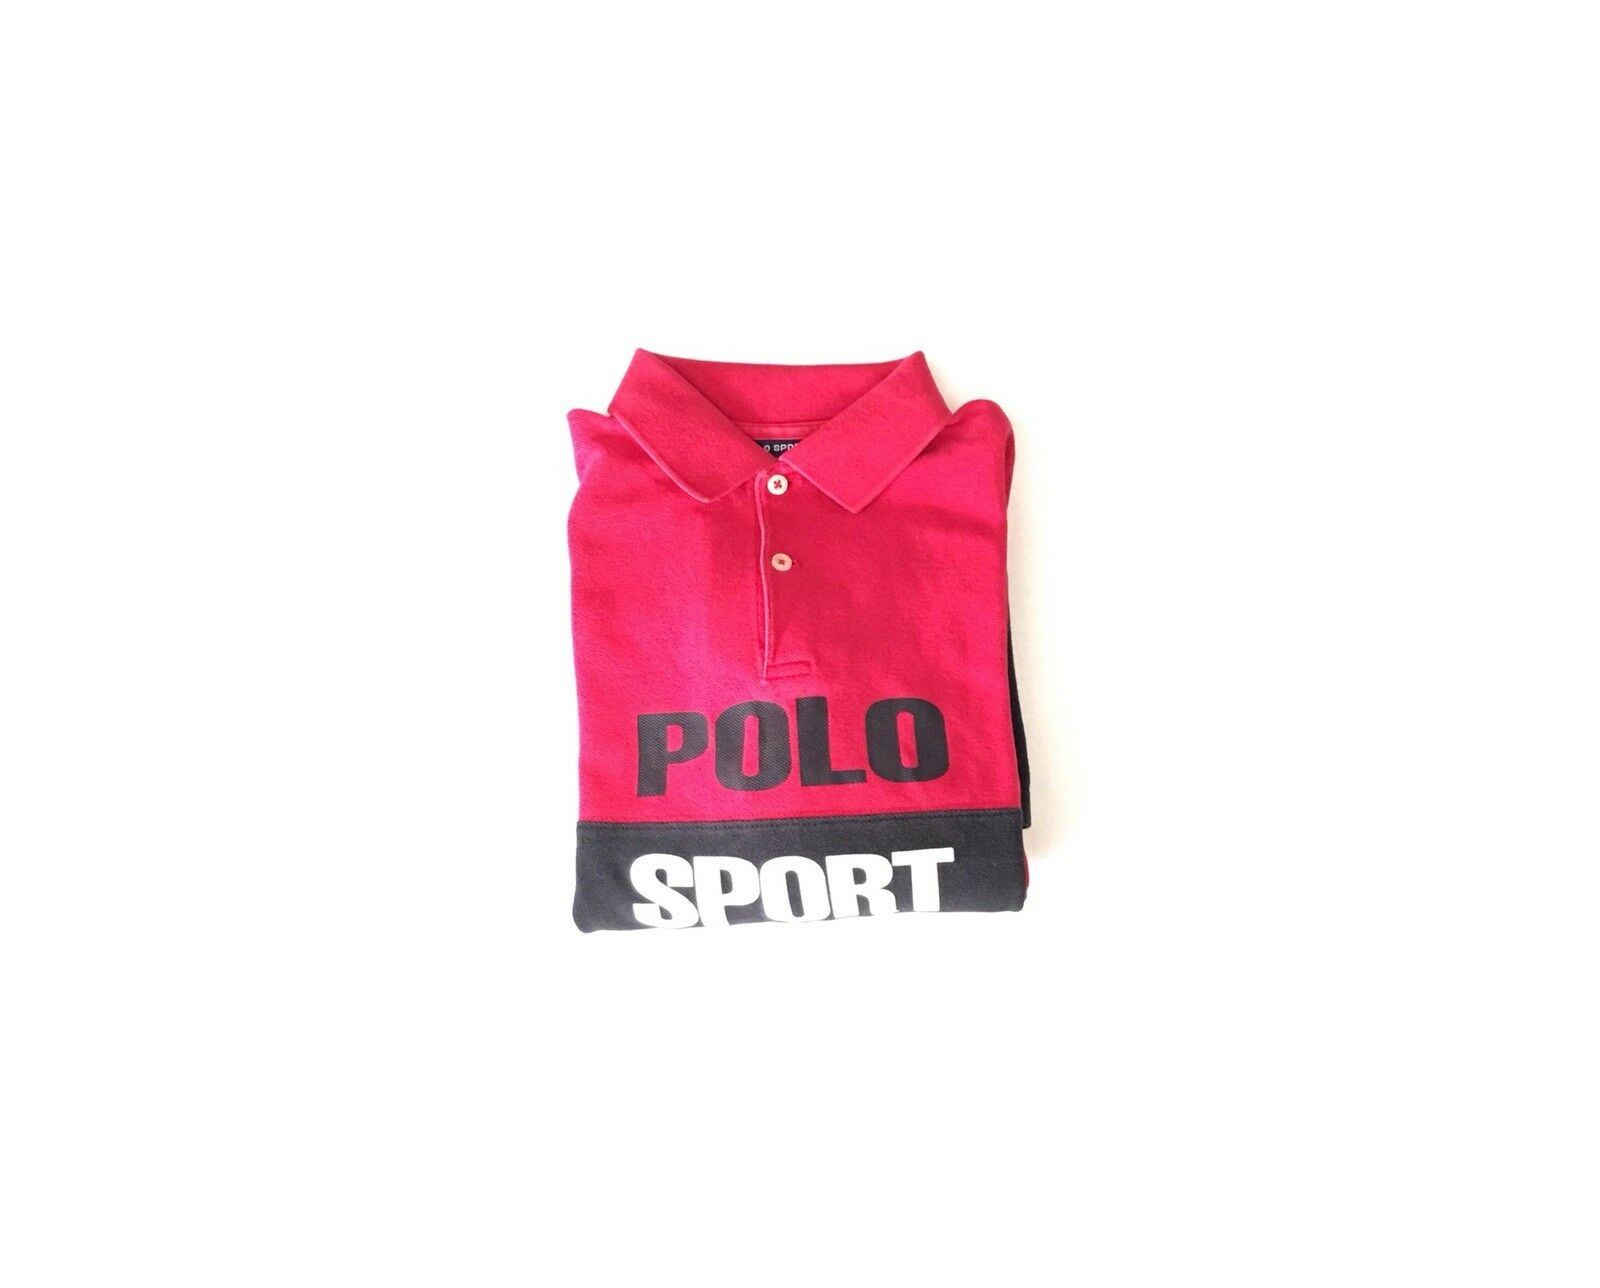 Vintage Polo Sport Spell Out 1990s Polos T Shirt Rugby Tee RL